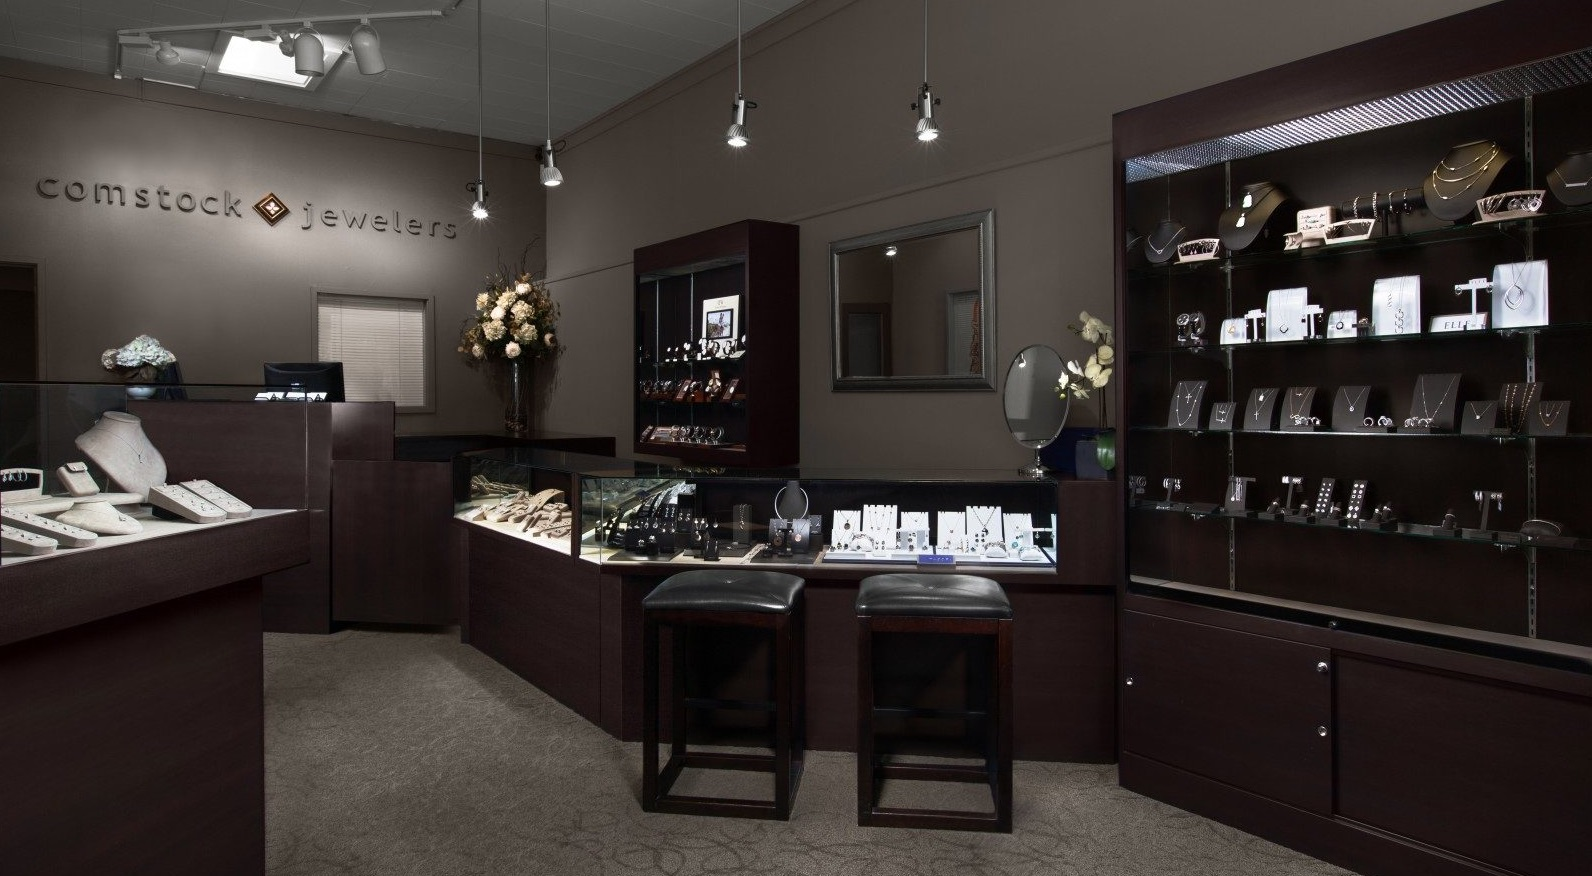 gold with jewellery stores me diamonds org jewelry silver fine near store goldworks auburn